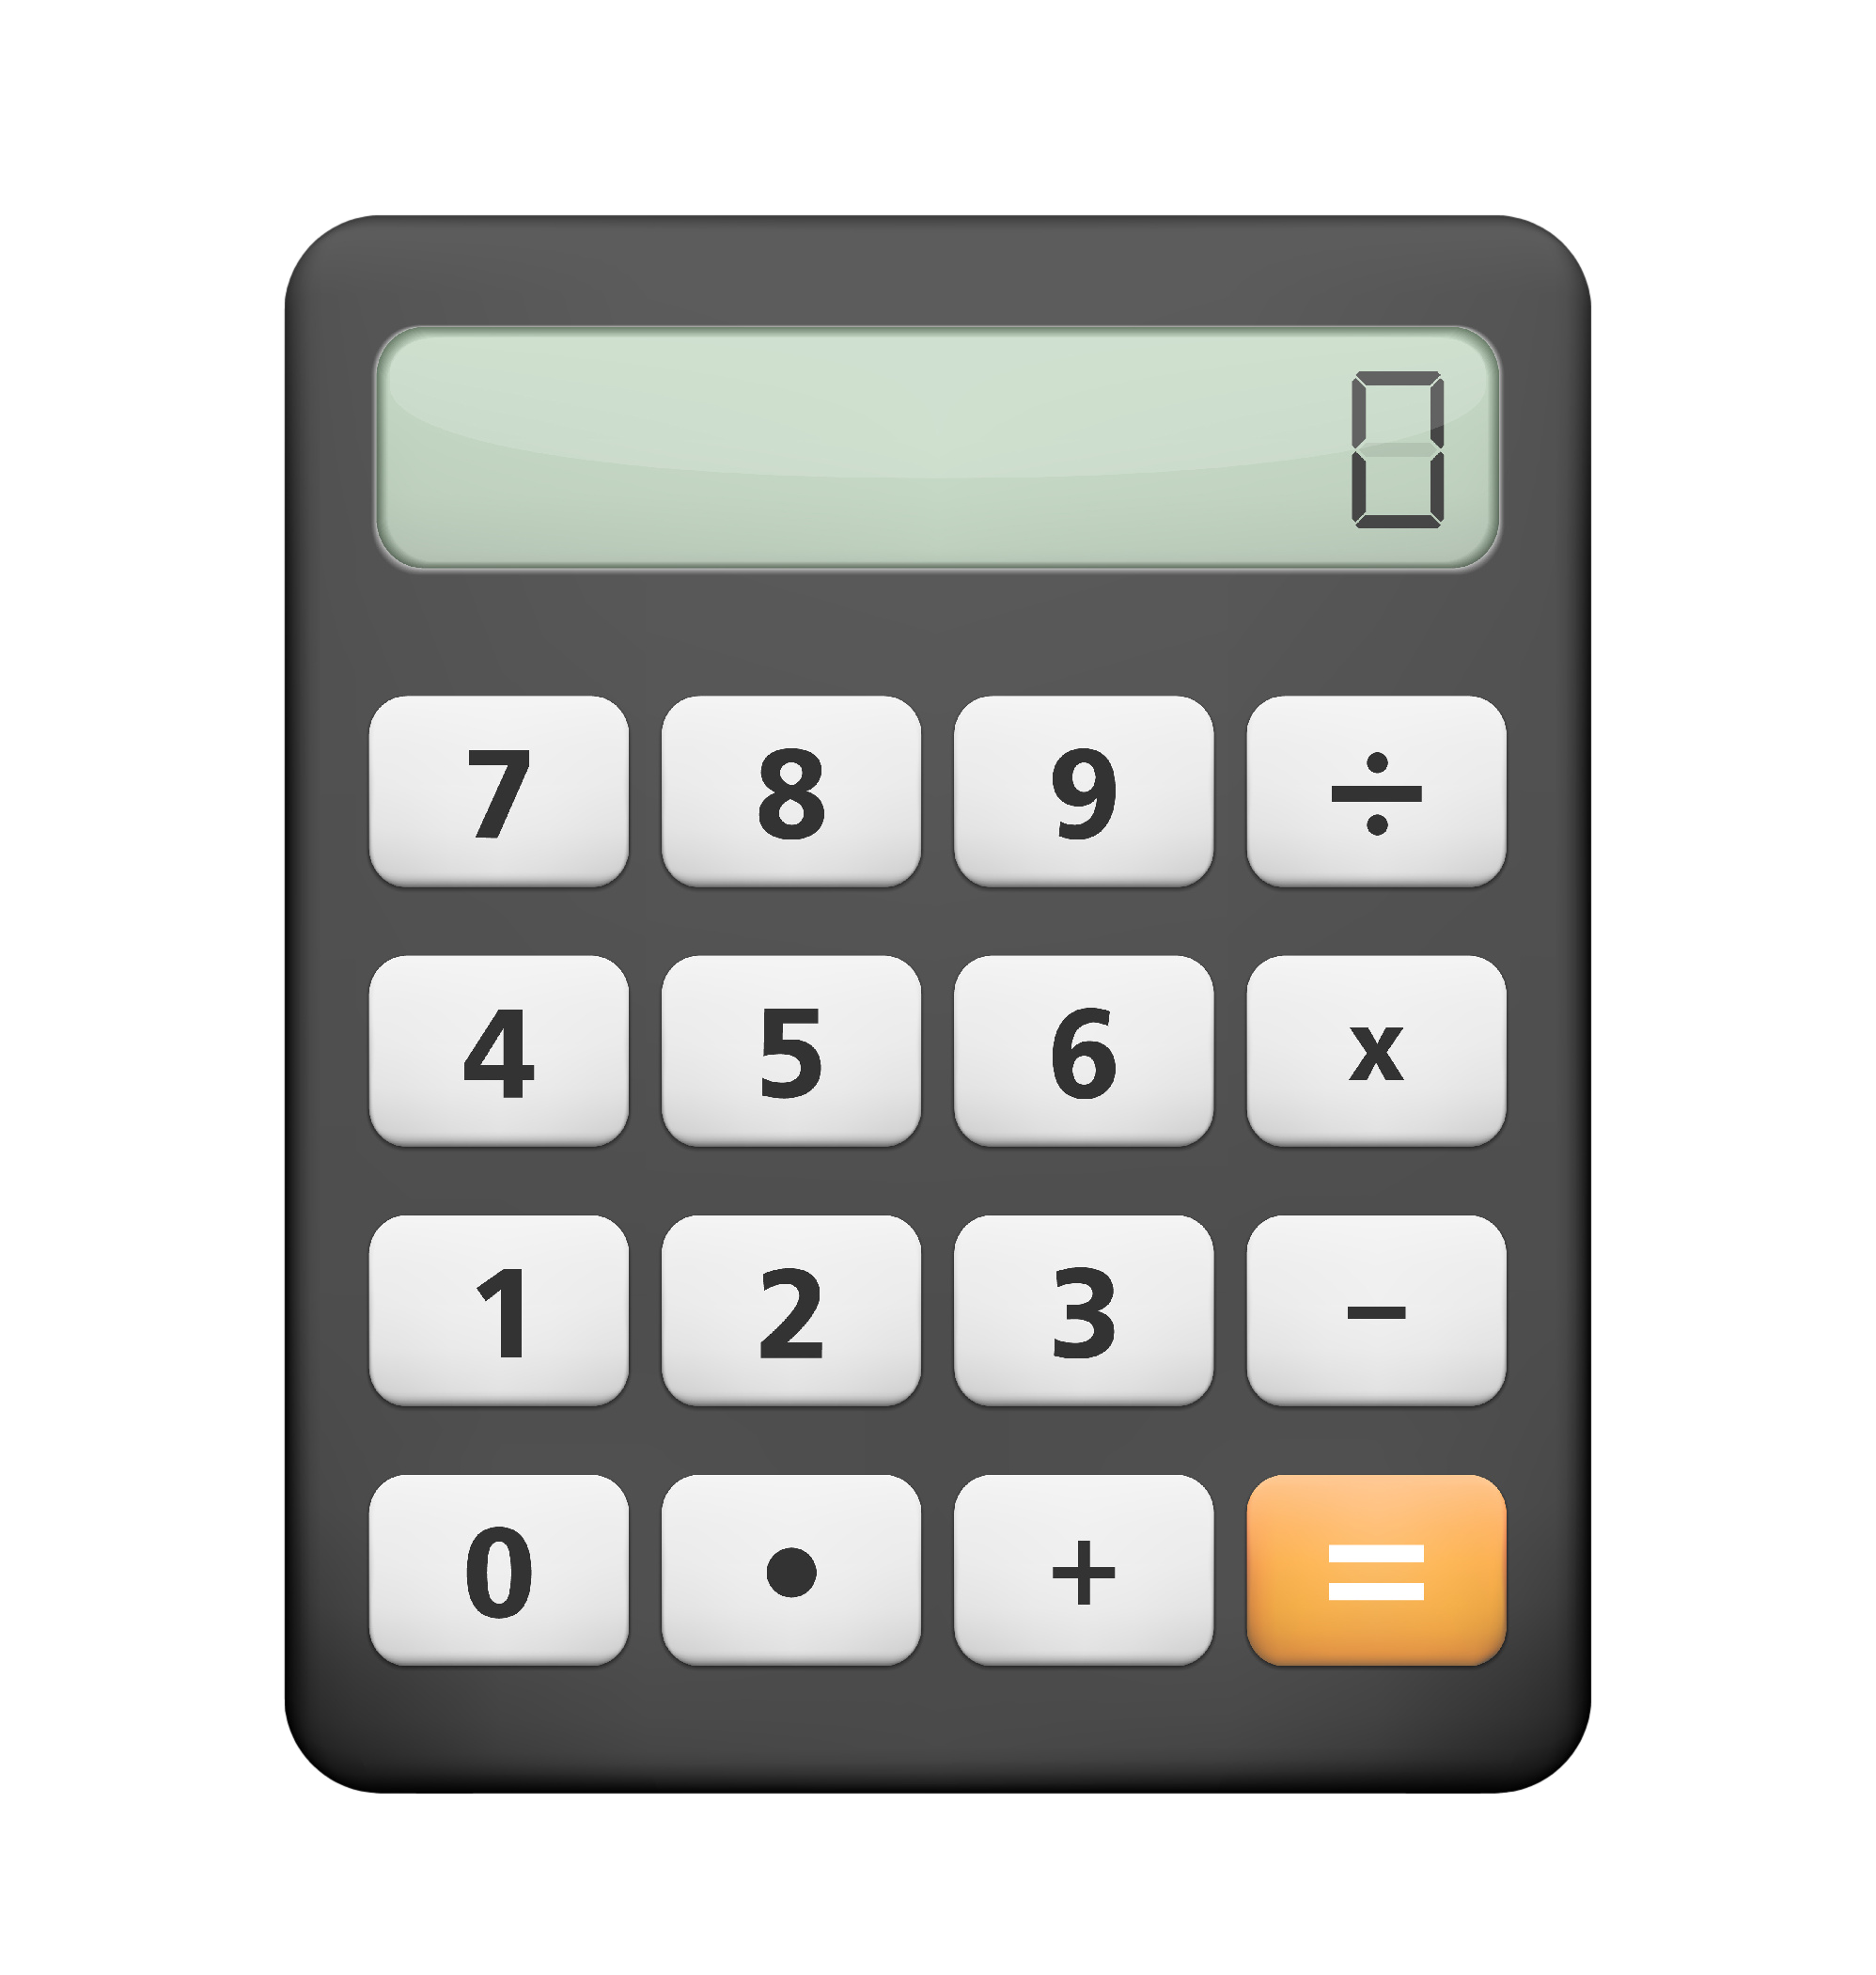 Real Rate of Return - This calculator determines the real rate of return on a taxable investment after taking taxes and inflation into account, and illustrates what the investment will be worth in after tax dollars.